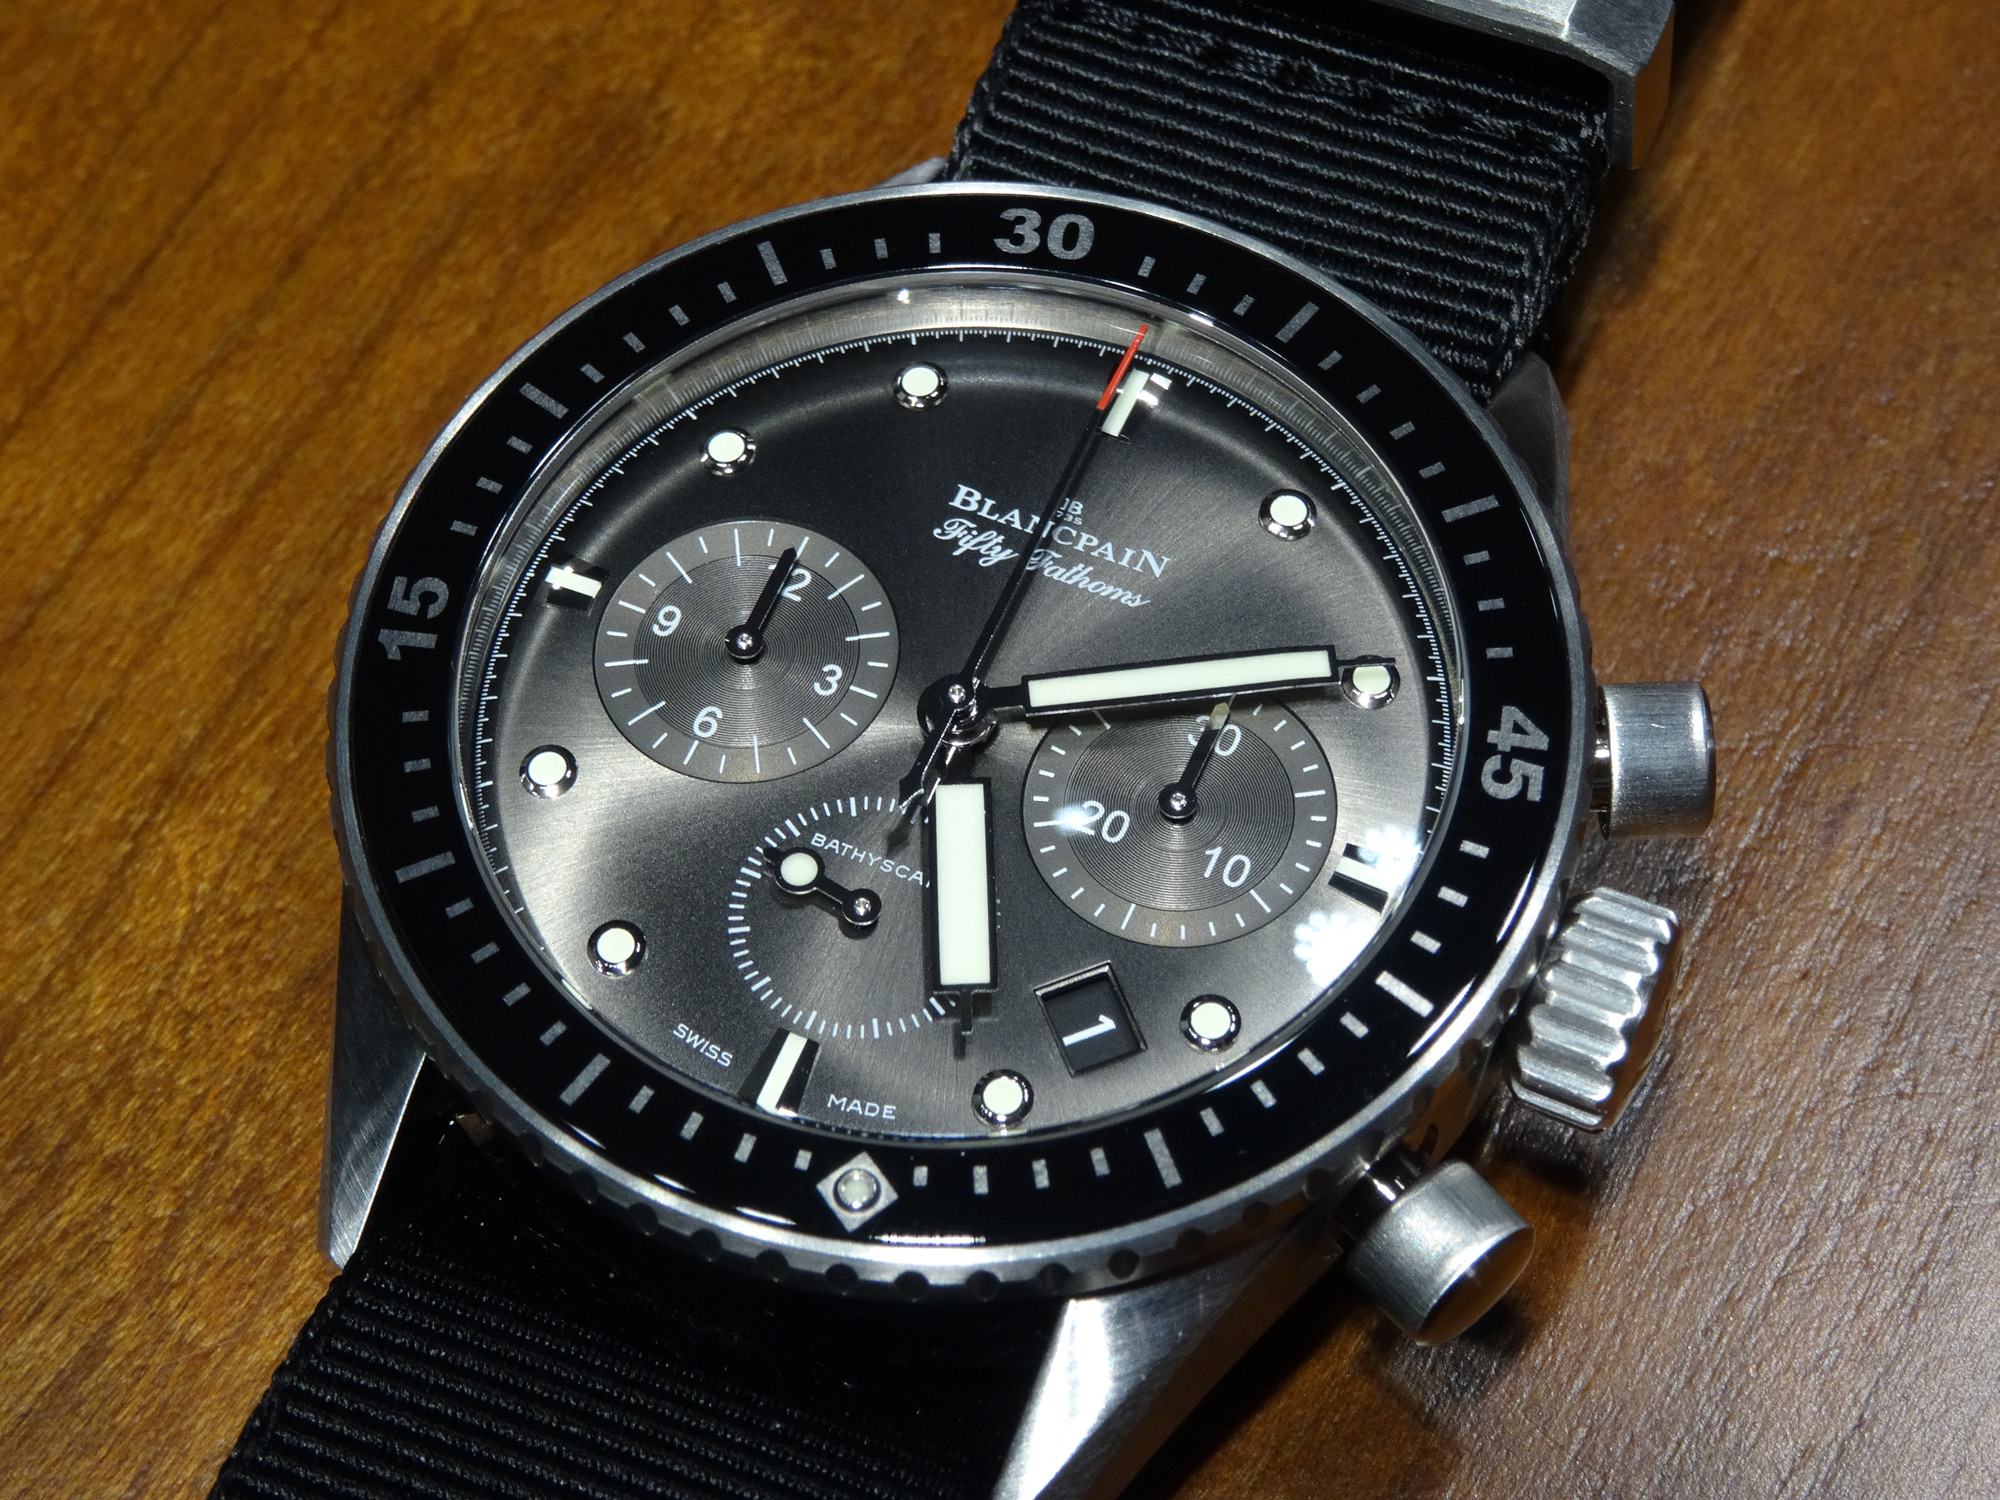 Blancpain Fifty Fathoms Bathyscaphe - Baselworld 2014